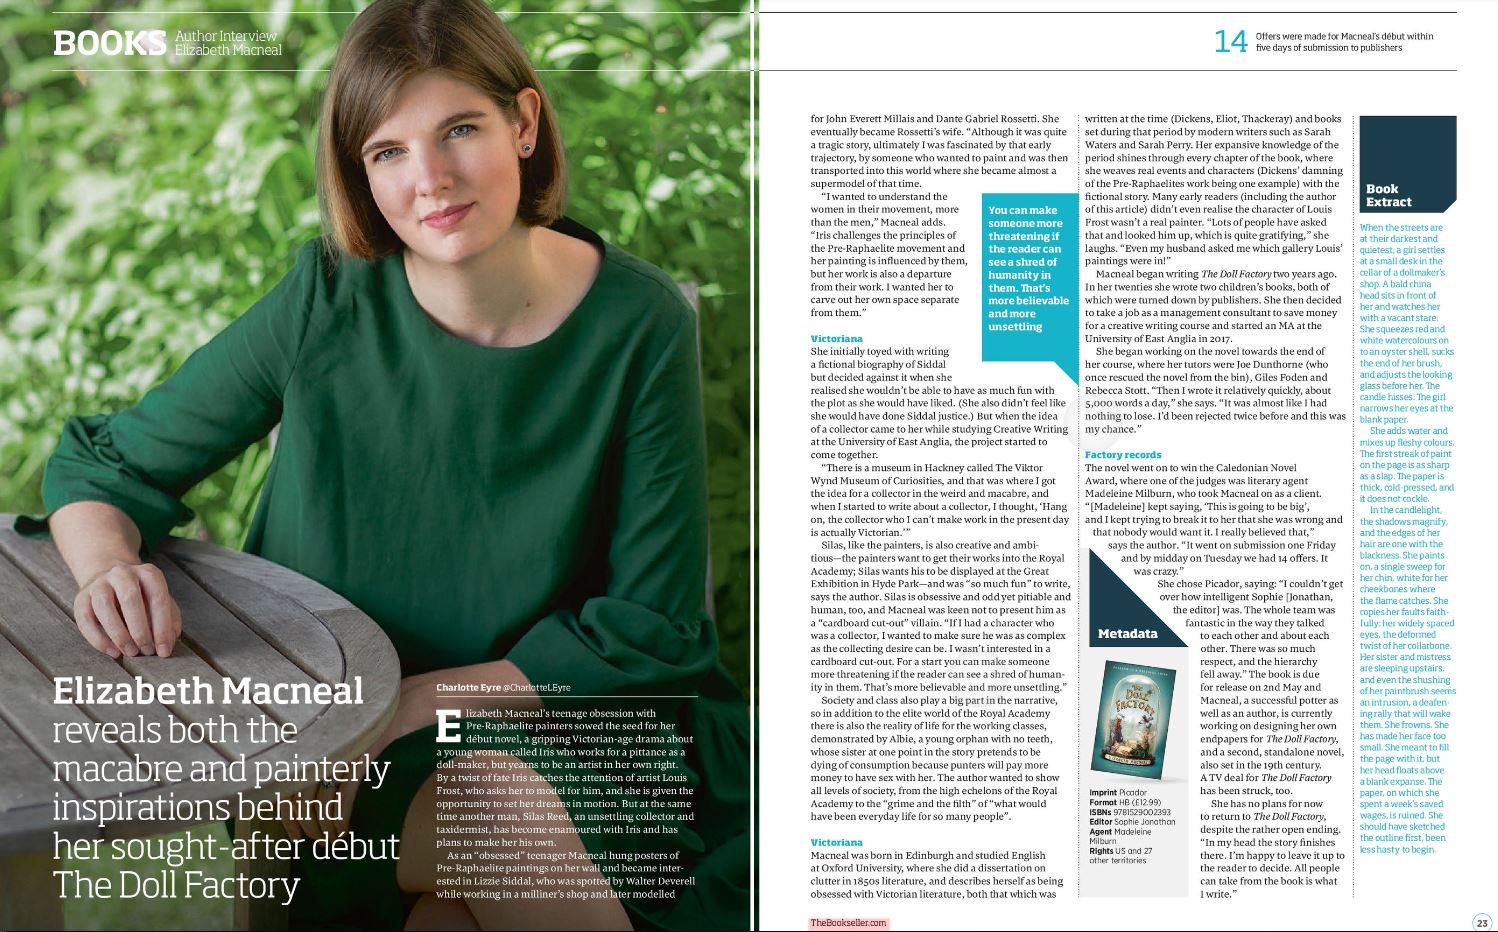 This interview was featured in  The Bookseller  on 1st March 2019.